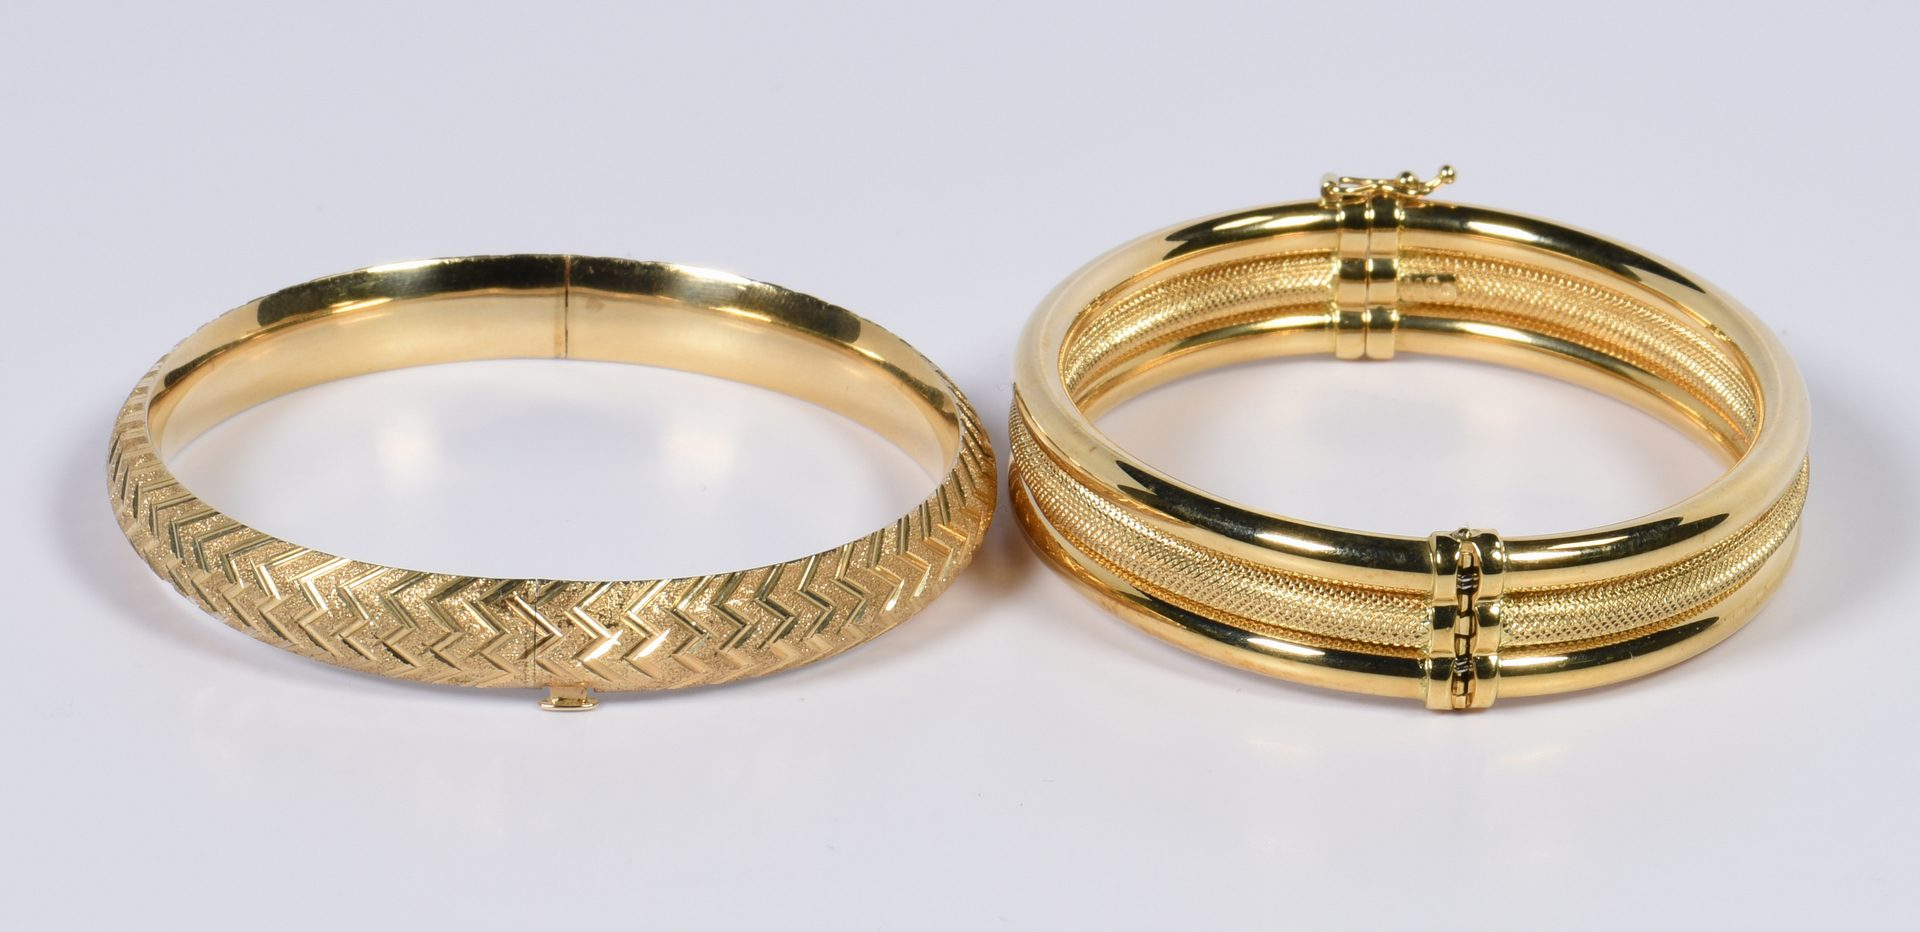 Lot 798: Two Gold Bangle Bracelets, 18K & 14K